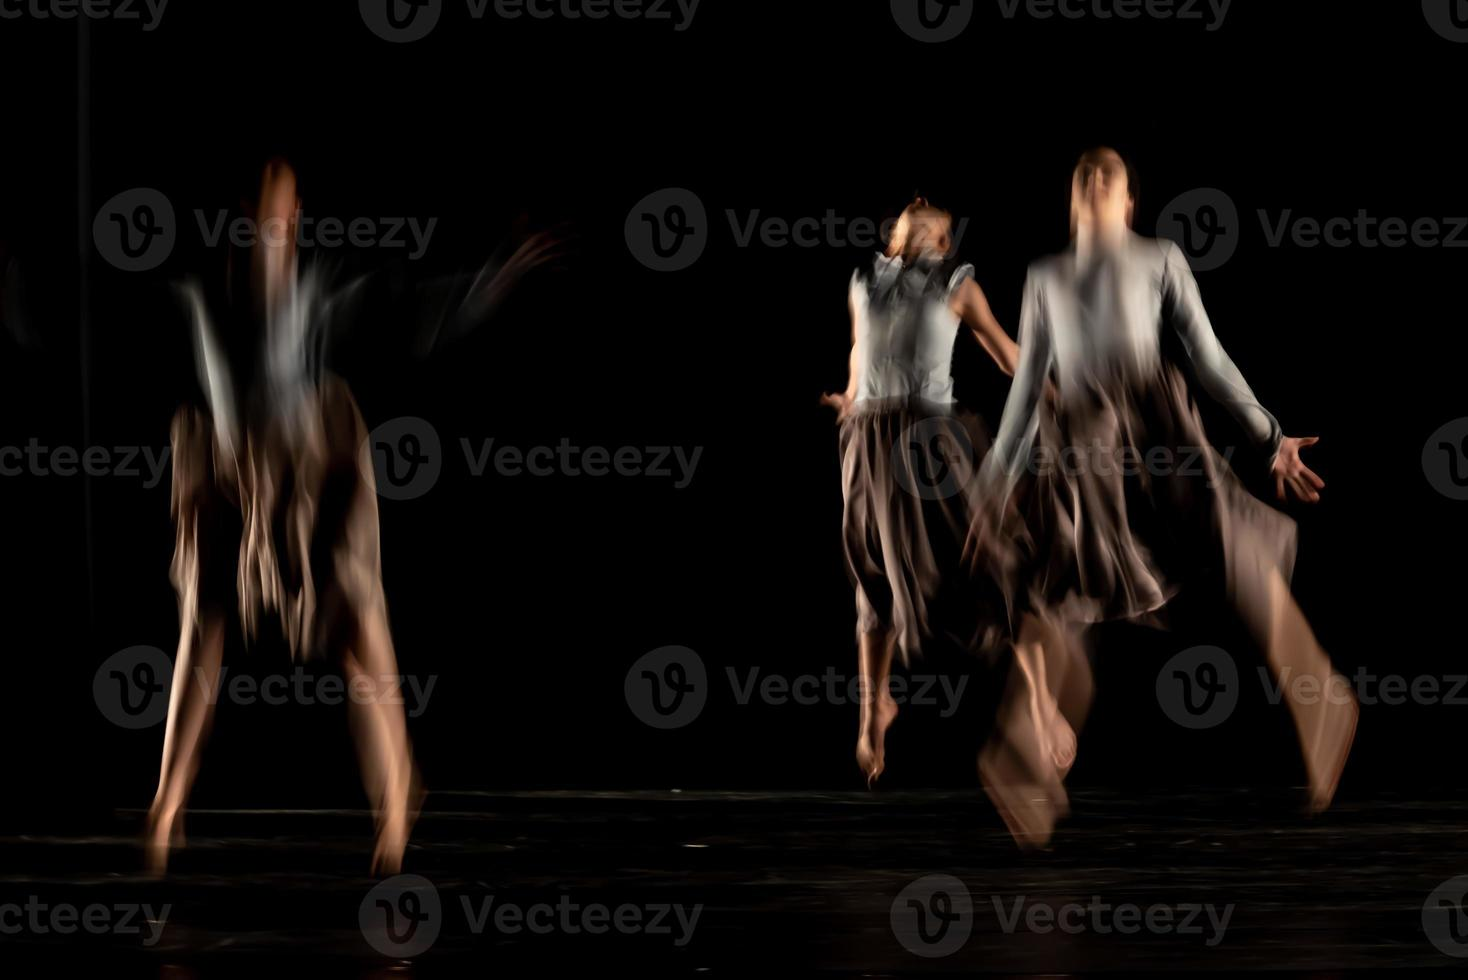 The abstract movement of the dance photo